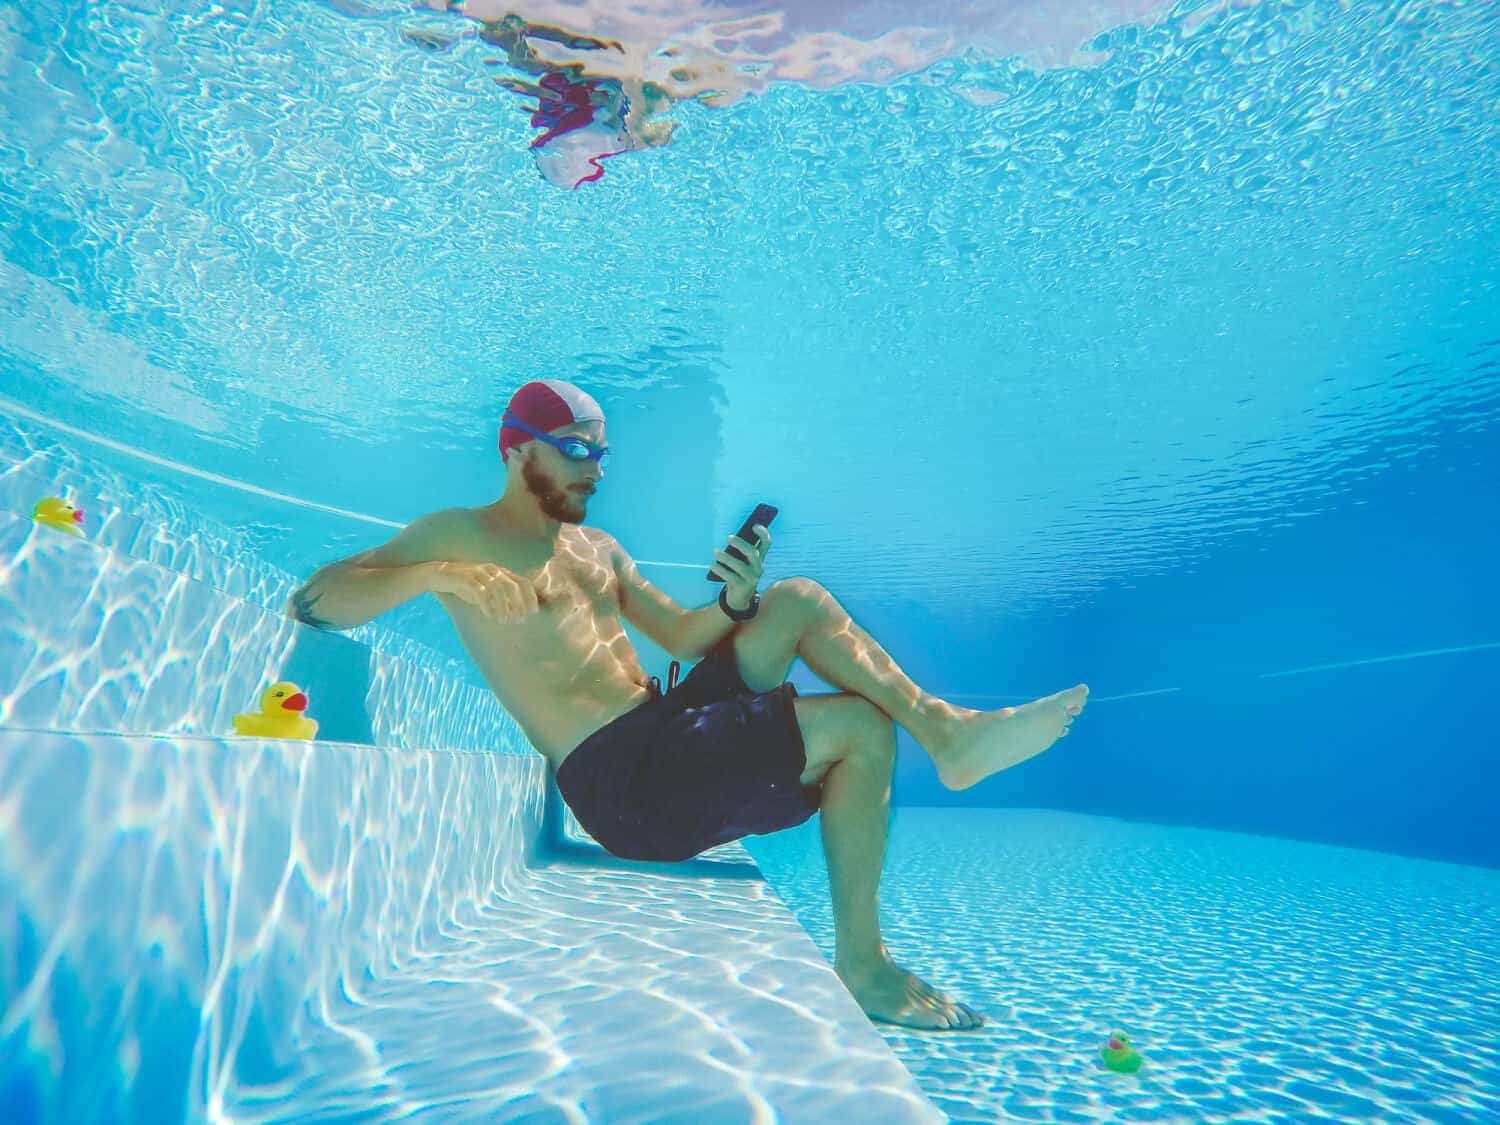 Image of man underwater using his cell phone while on vacation, oblivious to wi-fi security threats